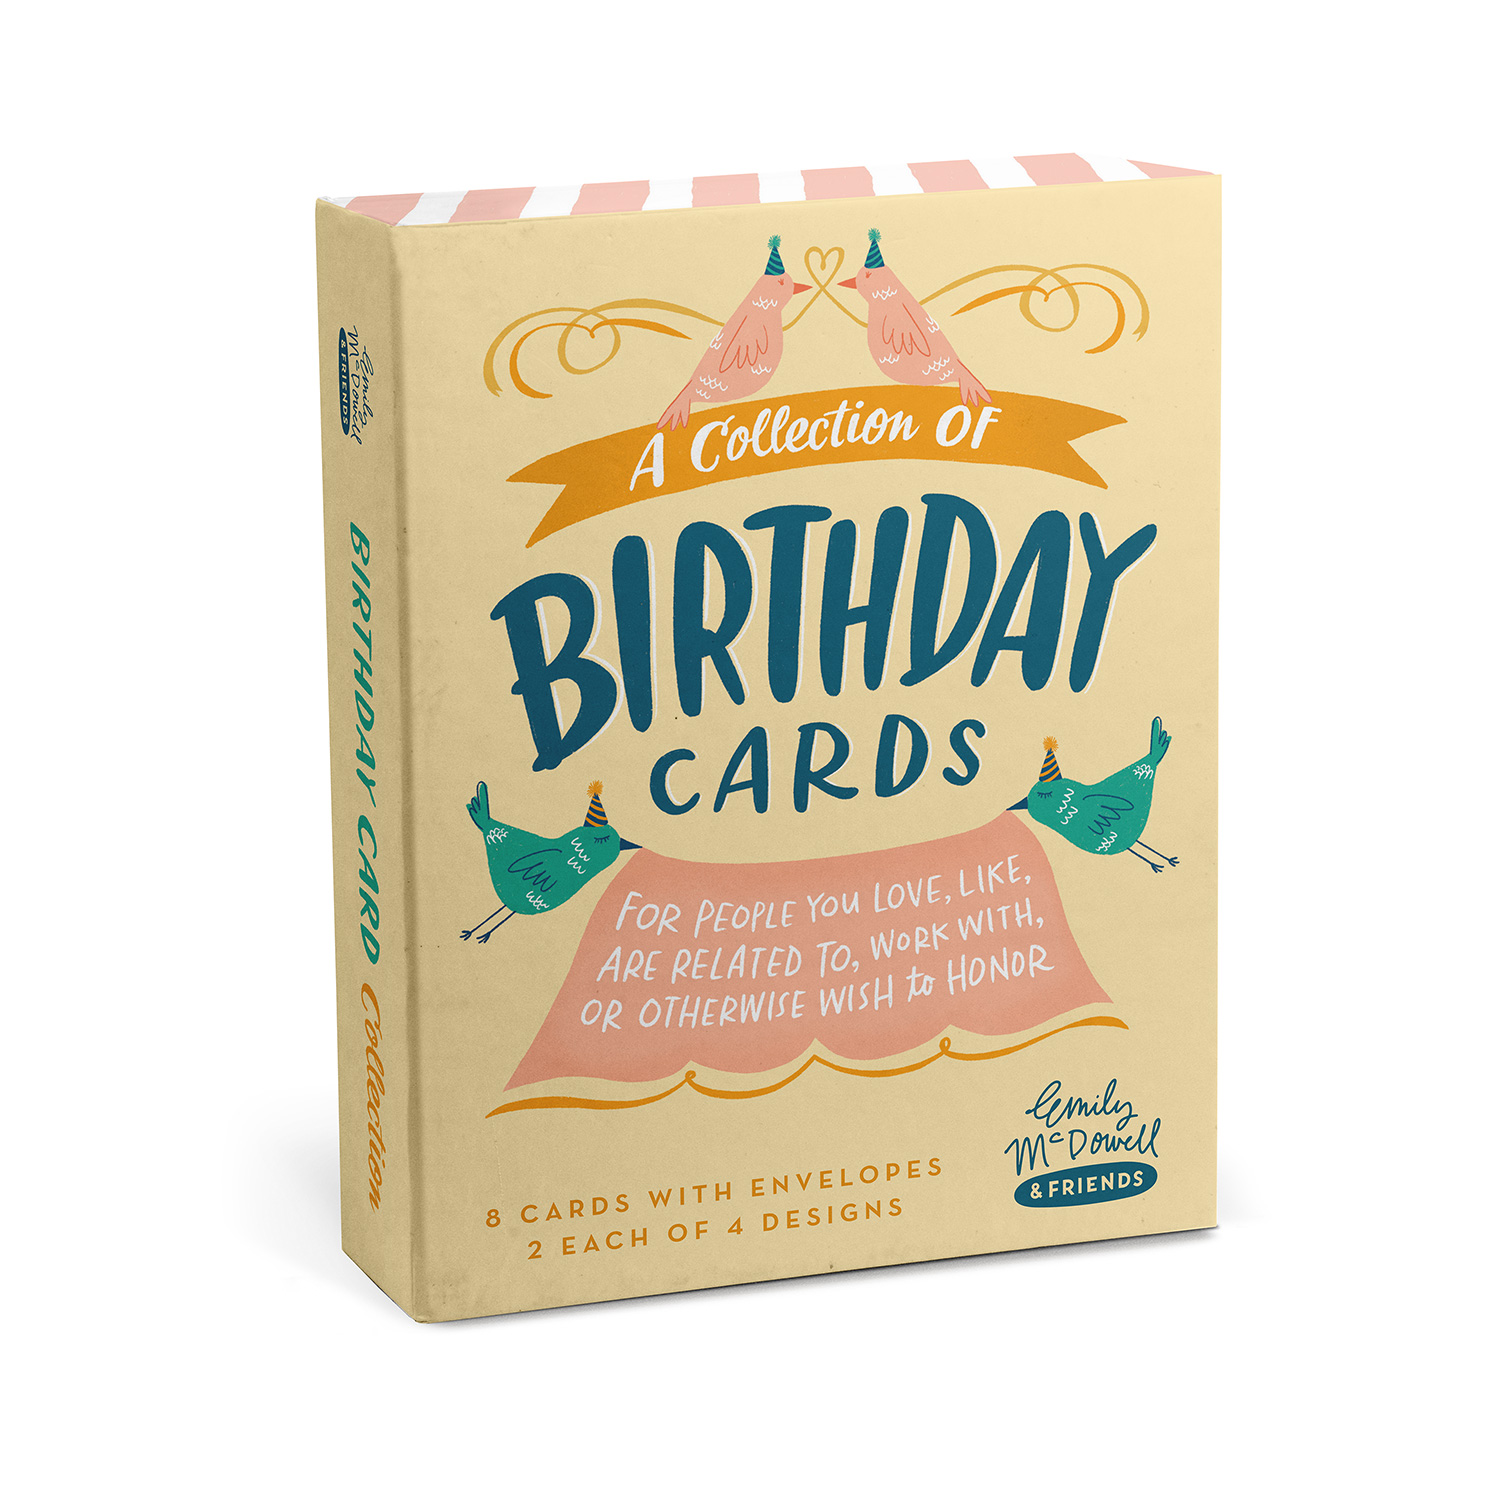 Birthday Cards: Mixed Box Card Sets